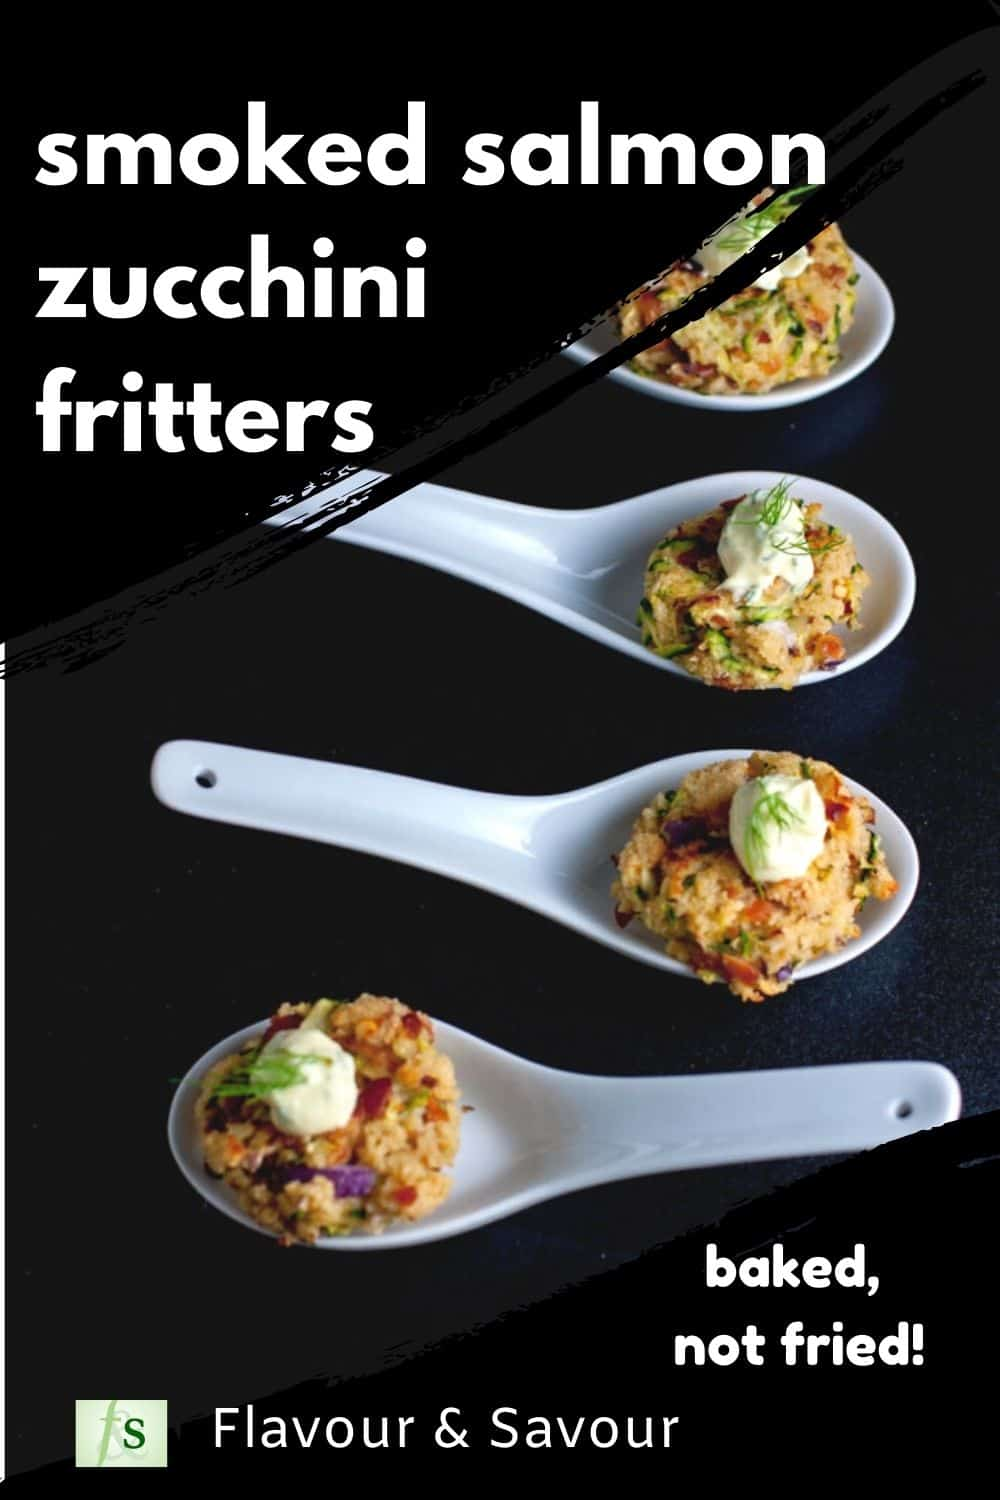 Smoked Salmon Zucchini Fritters with text overlay